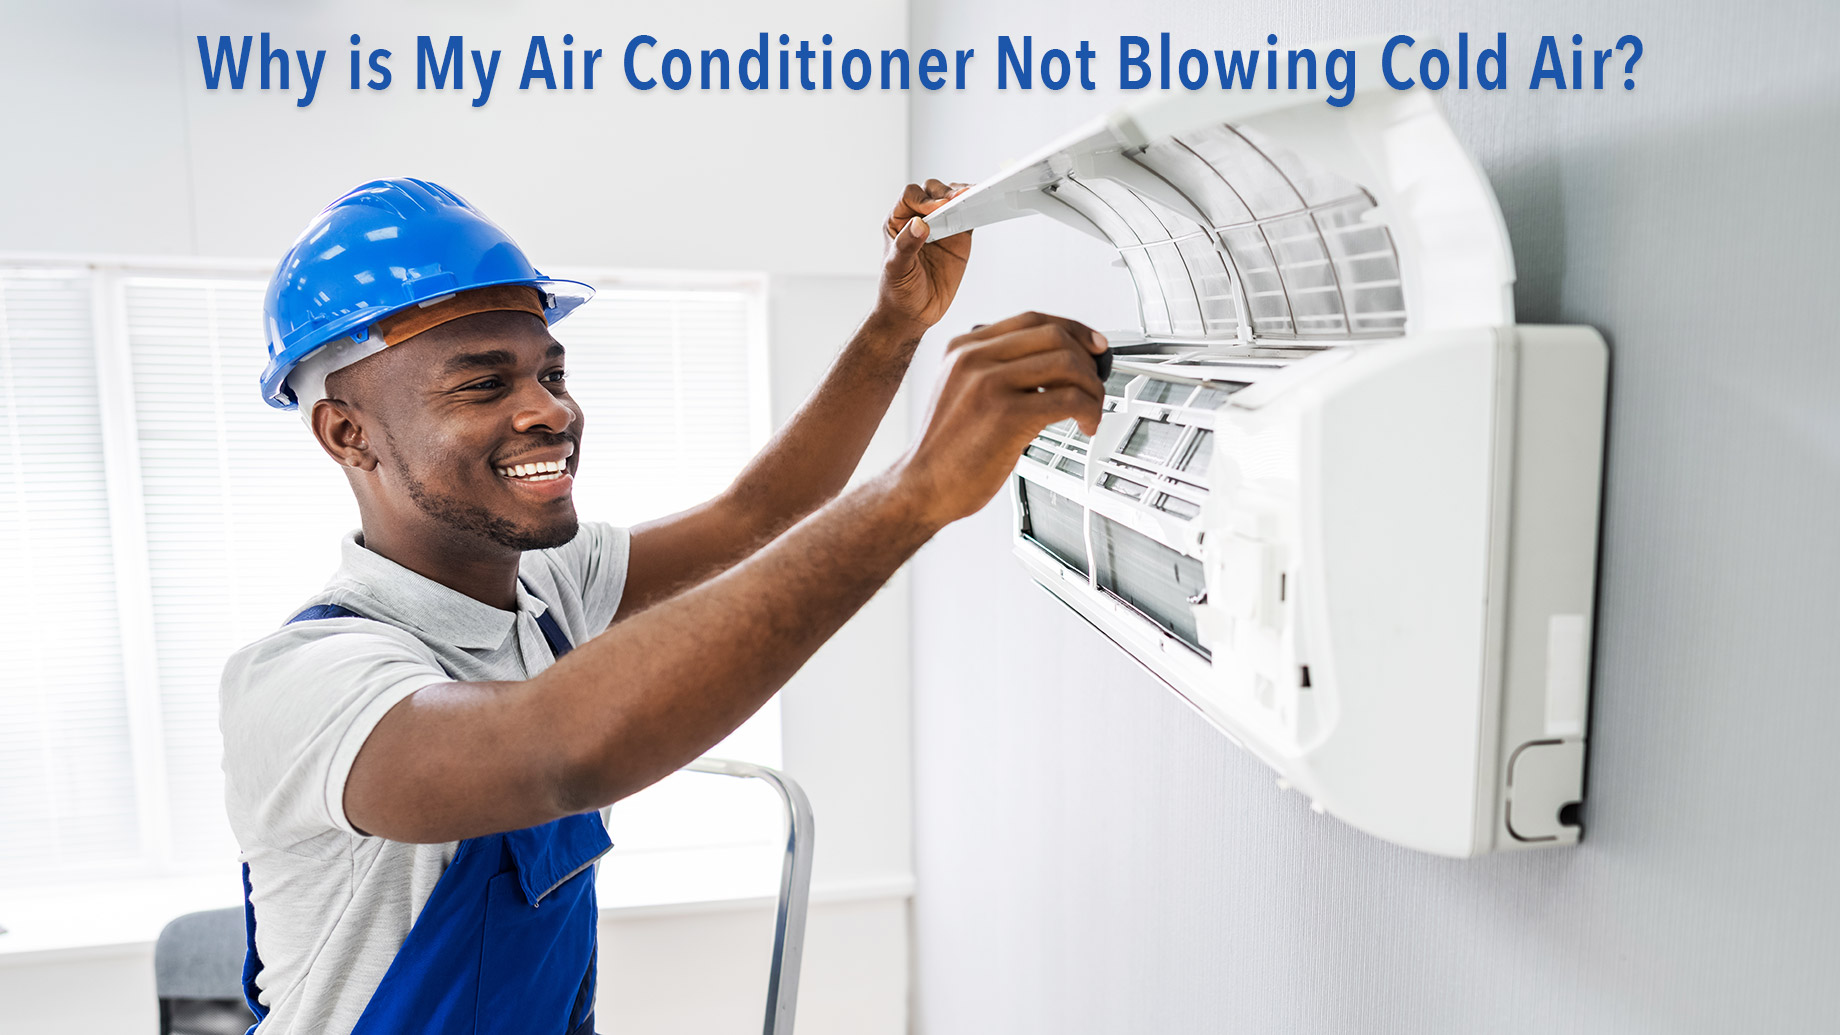 Why is My Air Conditioner Not Blowing Cold Air?